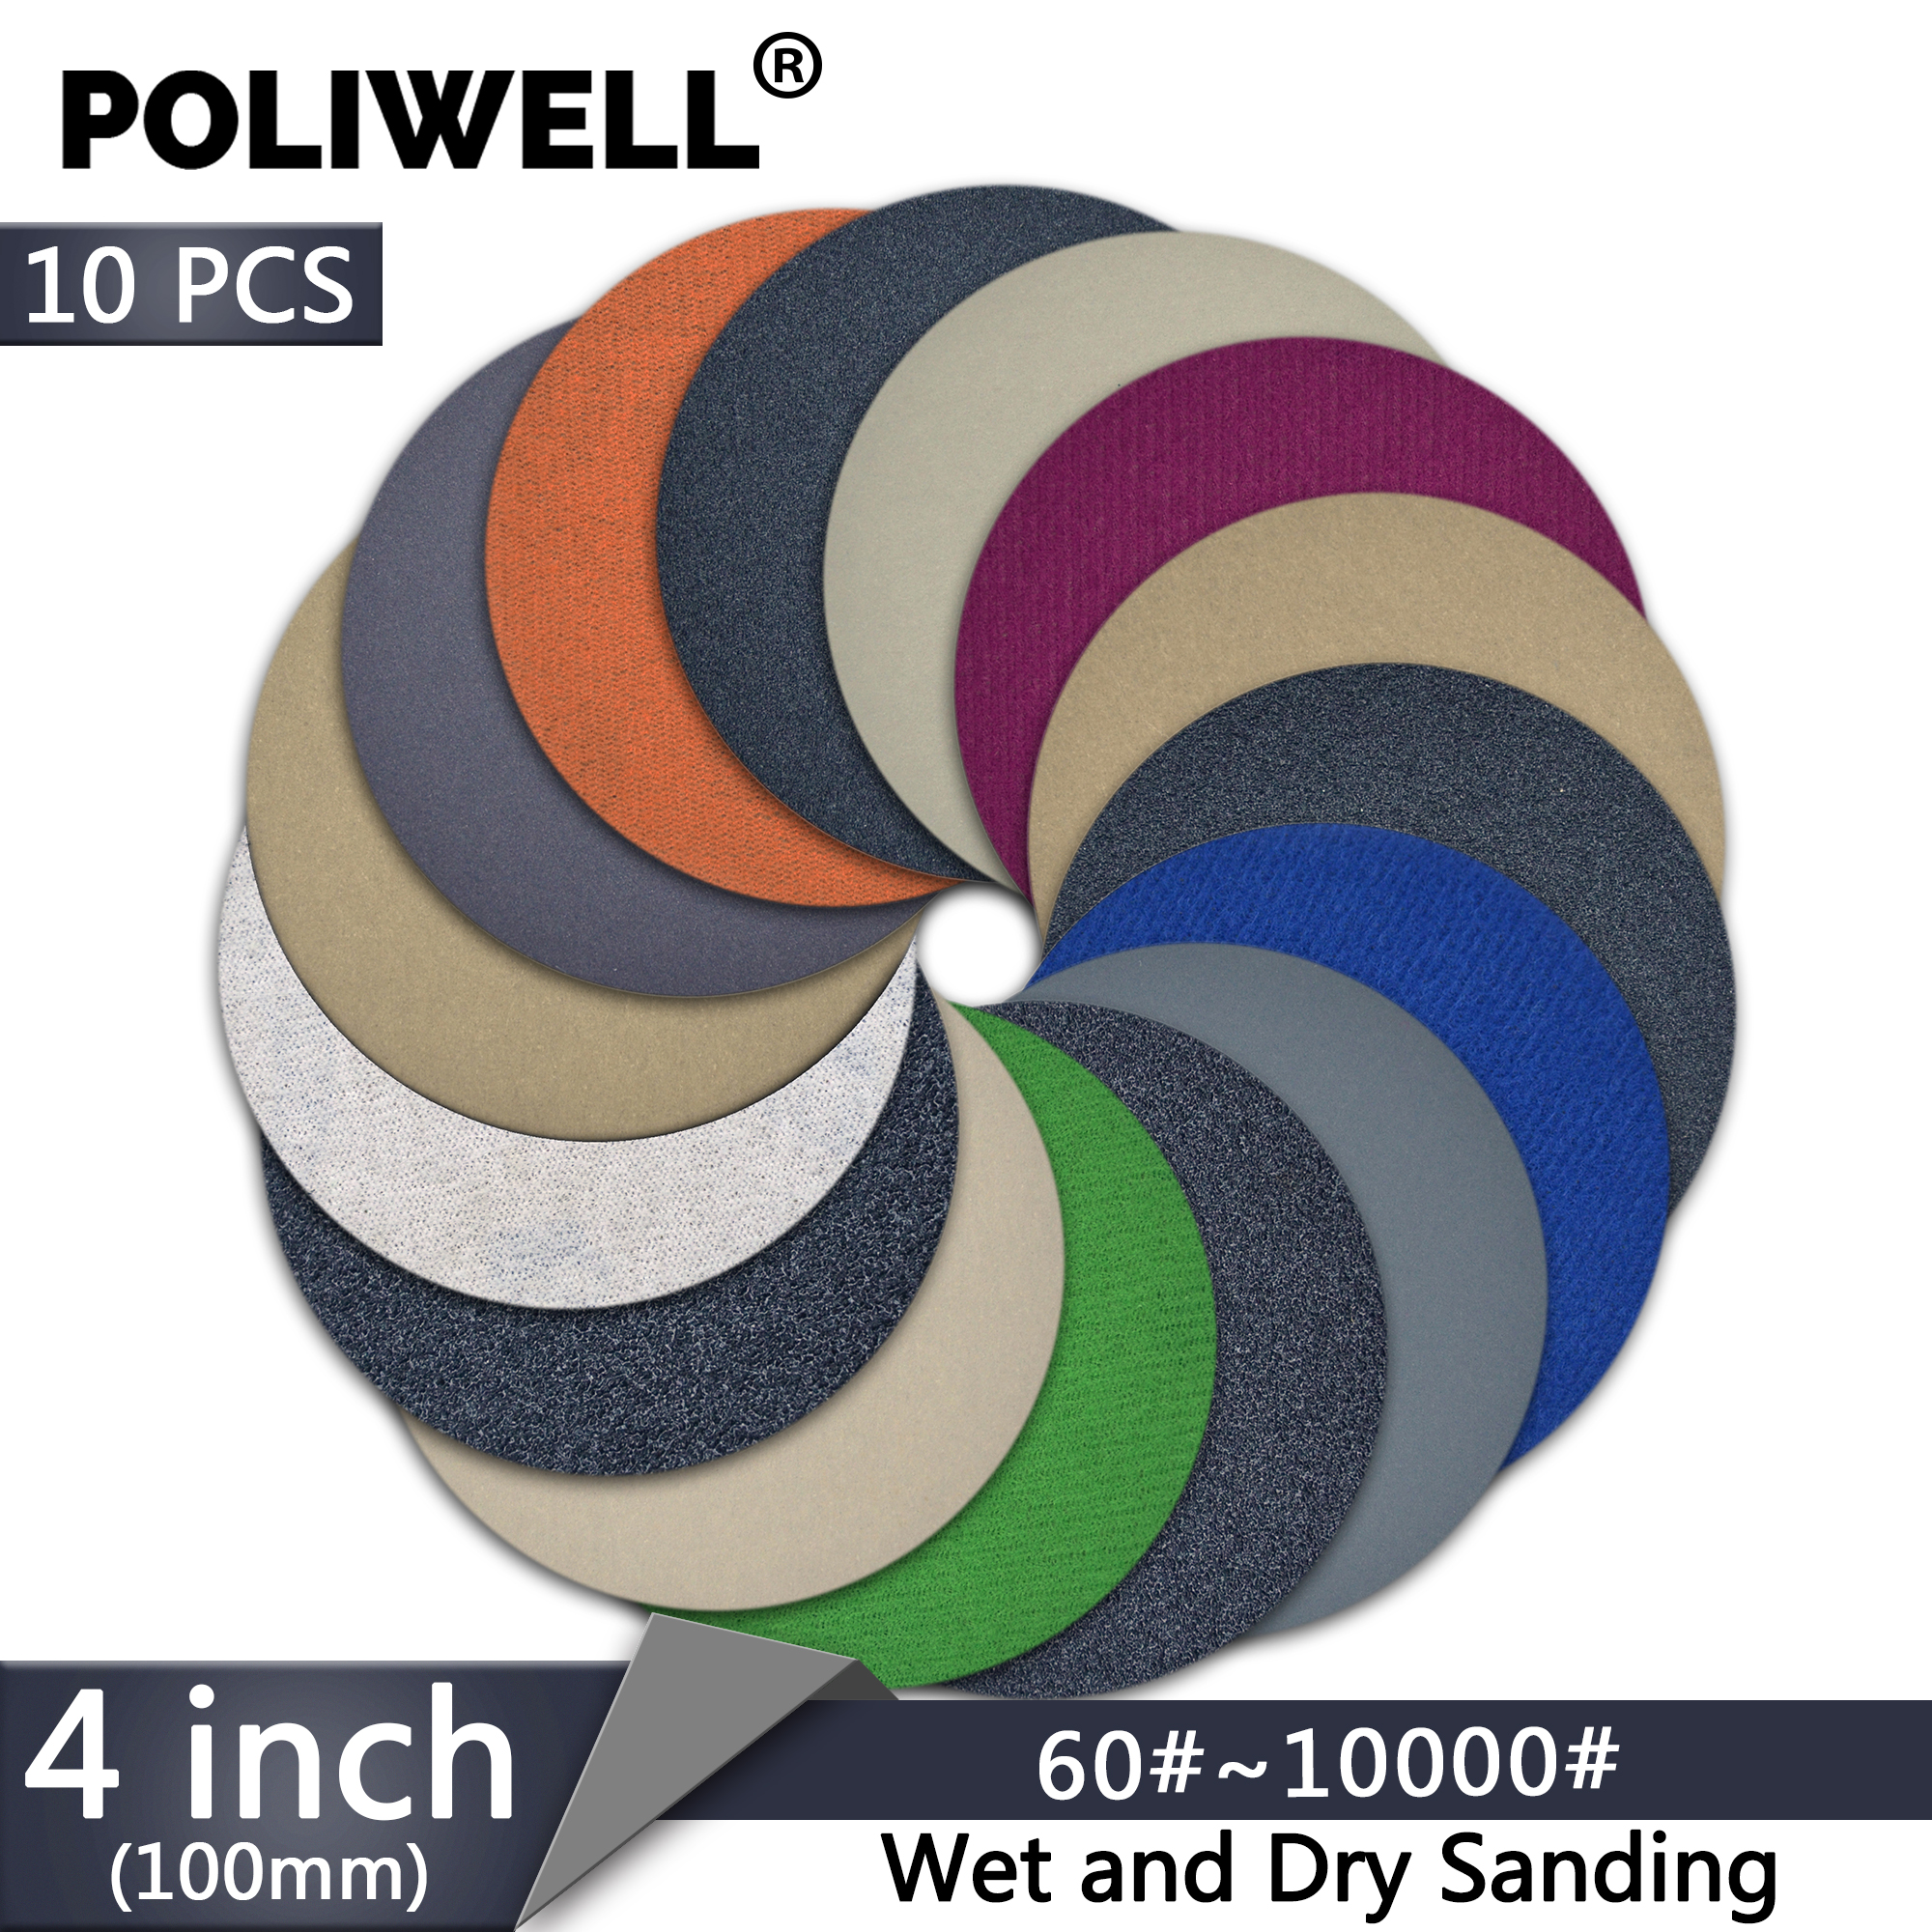 POLIWELL 10PCS 4 Inch Grit 60 1000 3000 5000 Wet Sanding Discs 100mm Silicon Carbide Round Sanding Paper Sandpaper Car Sanding